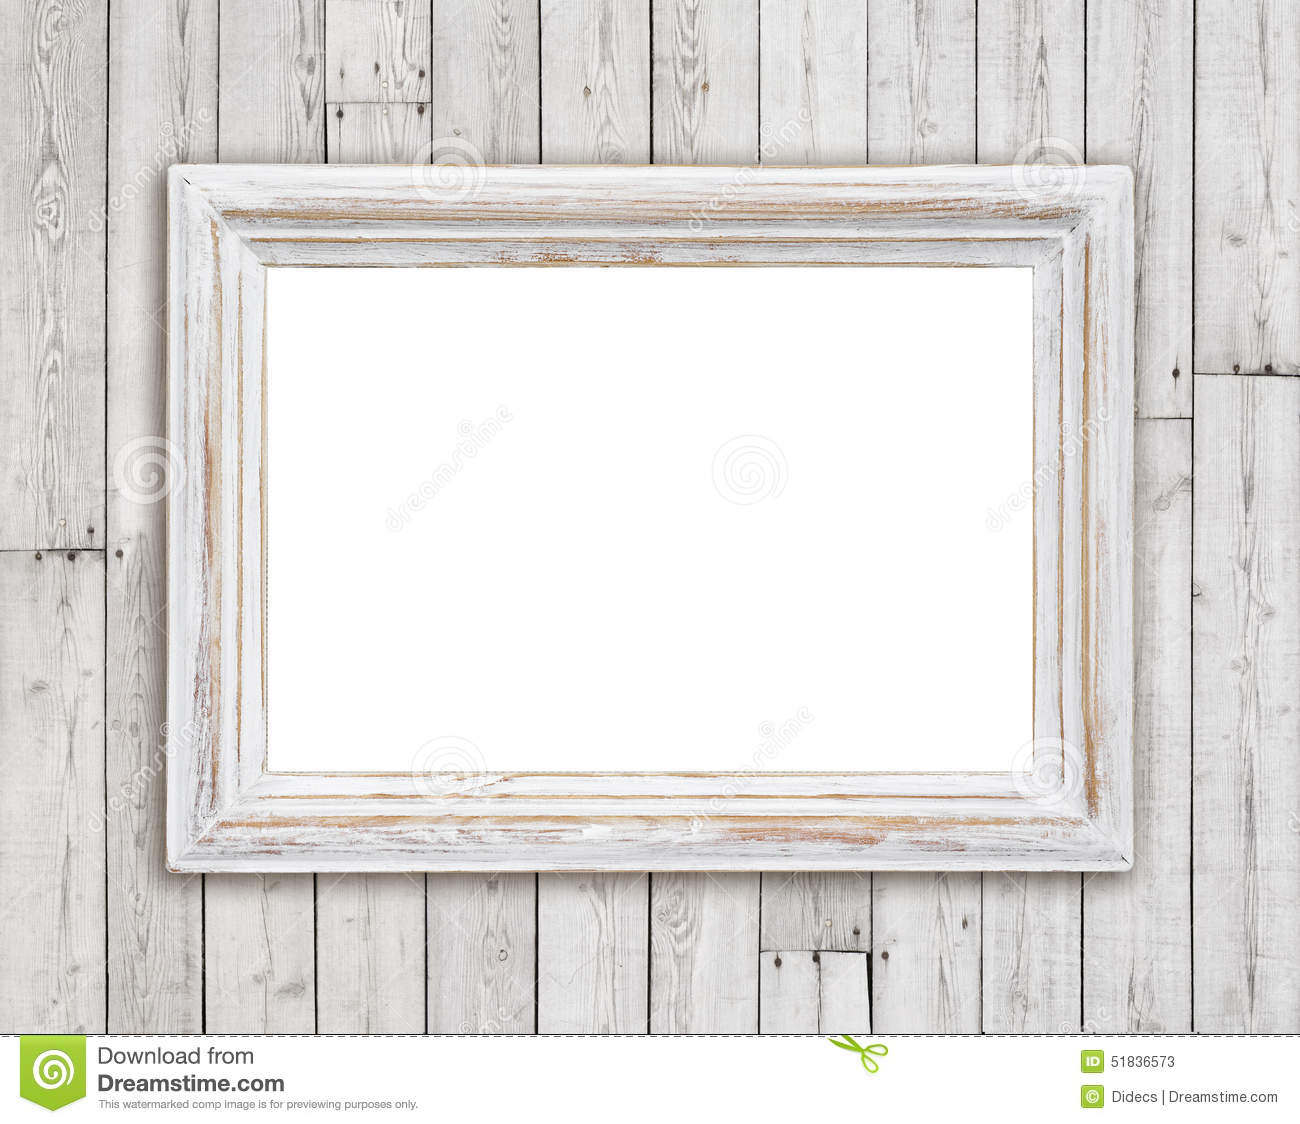 Bleached Wooden Picture Frame On Vintage Plank Wall